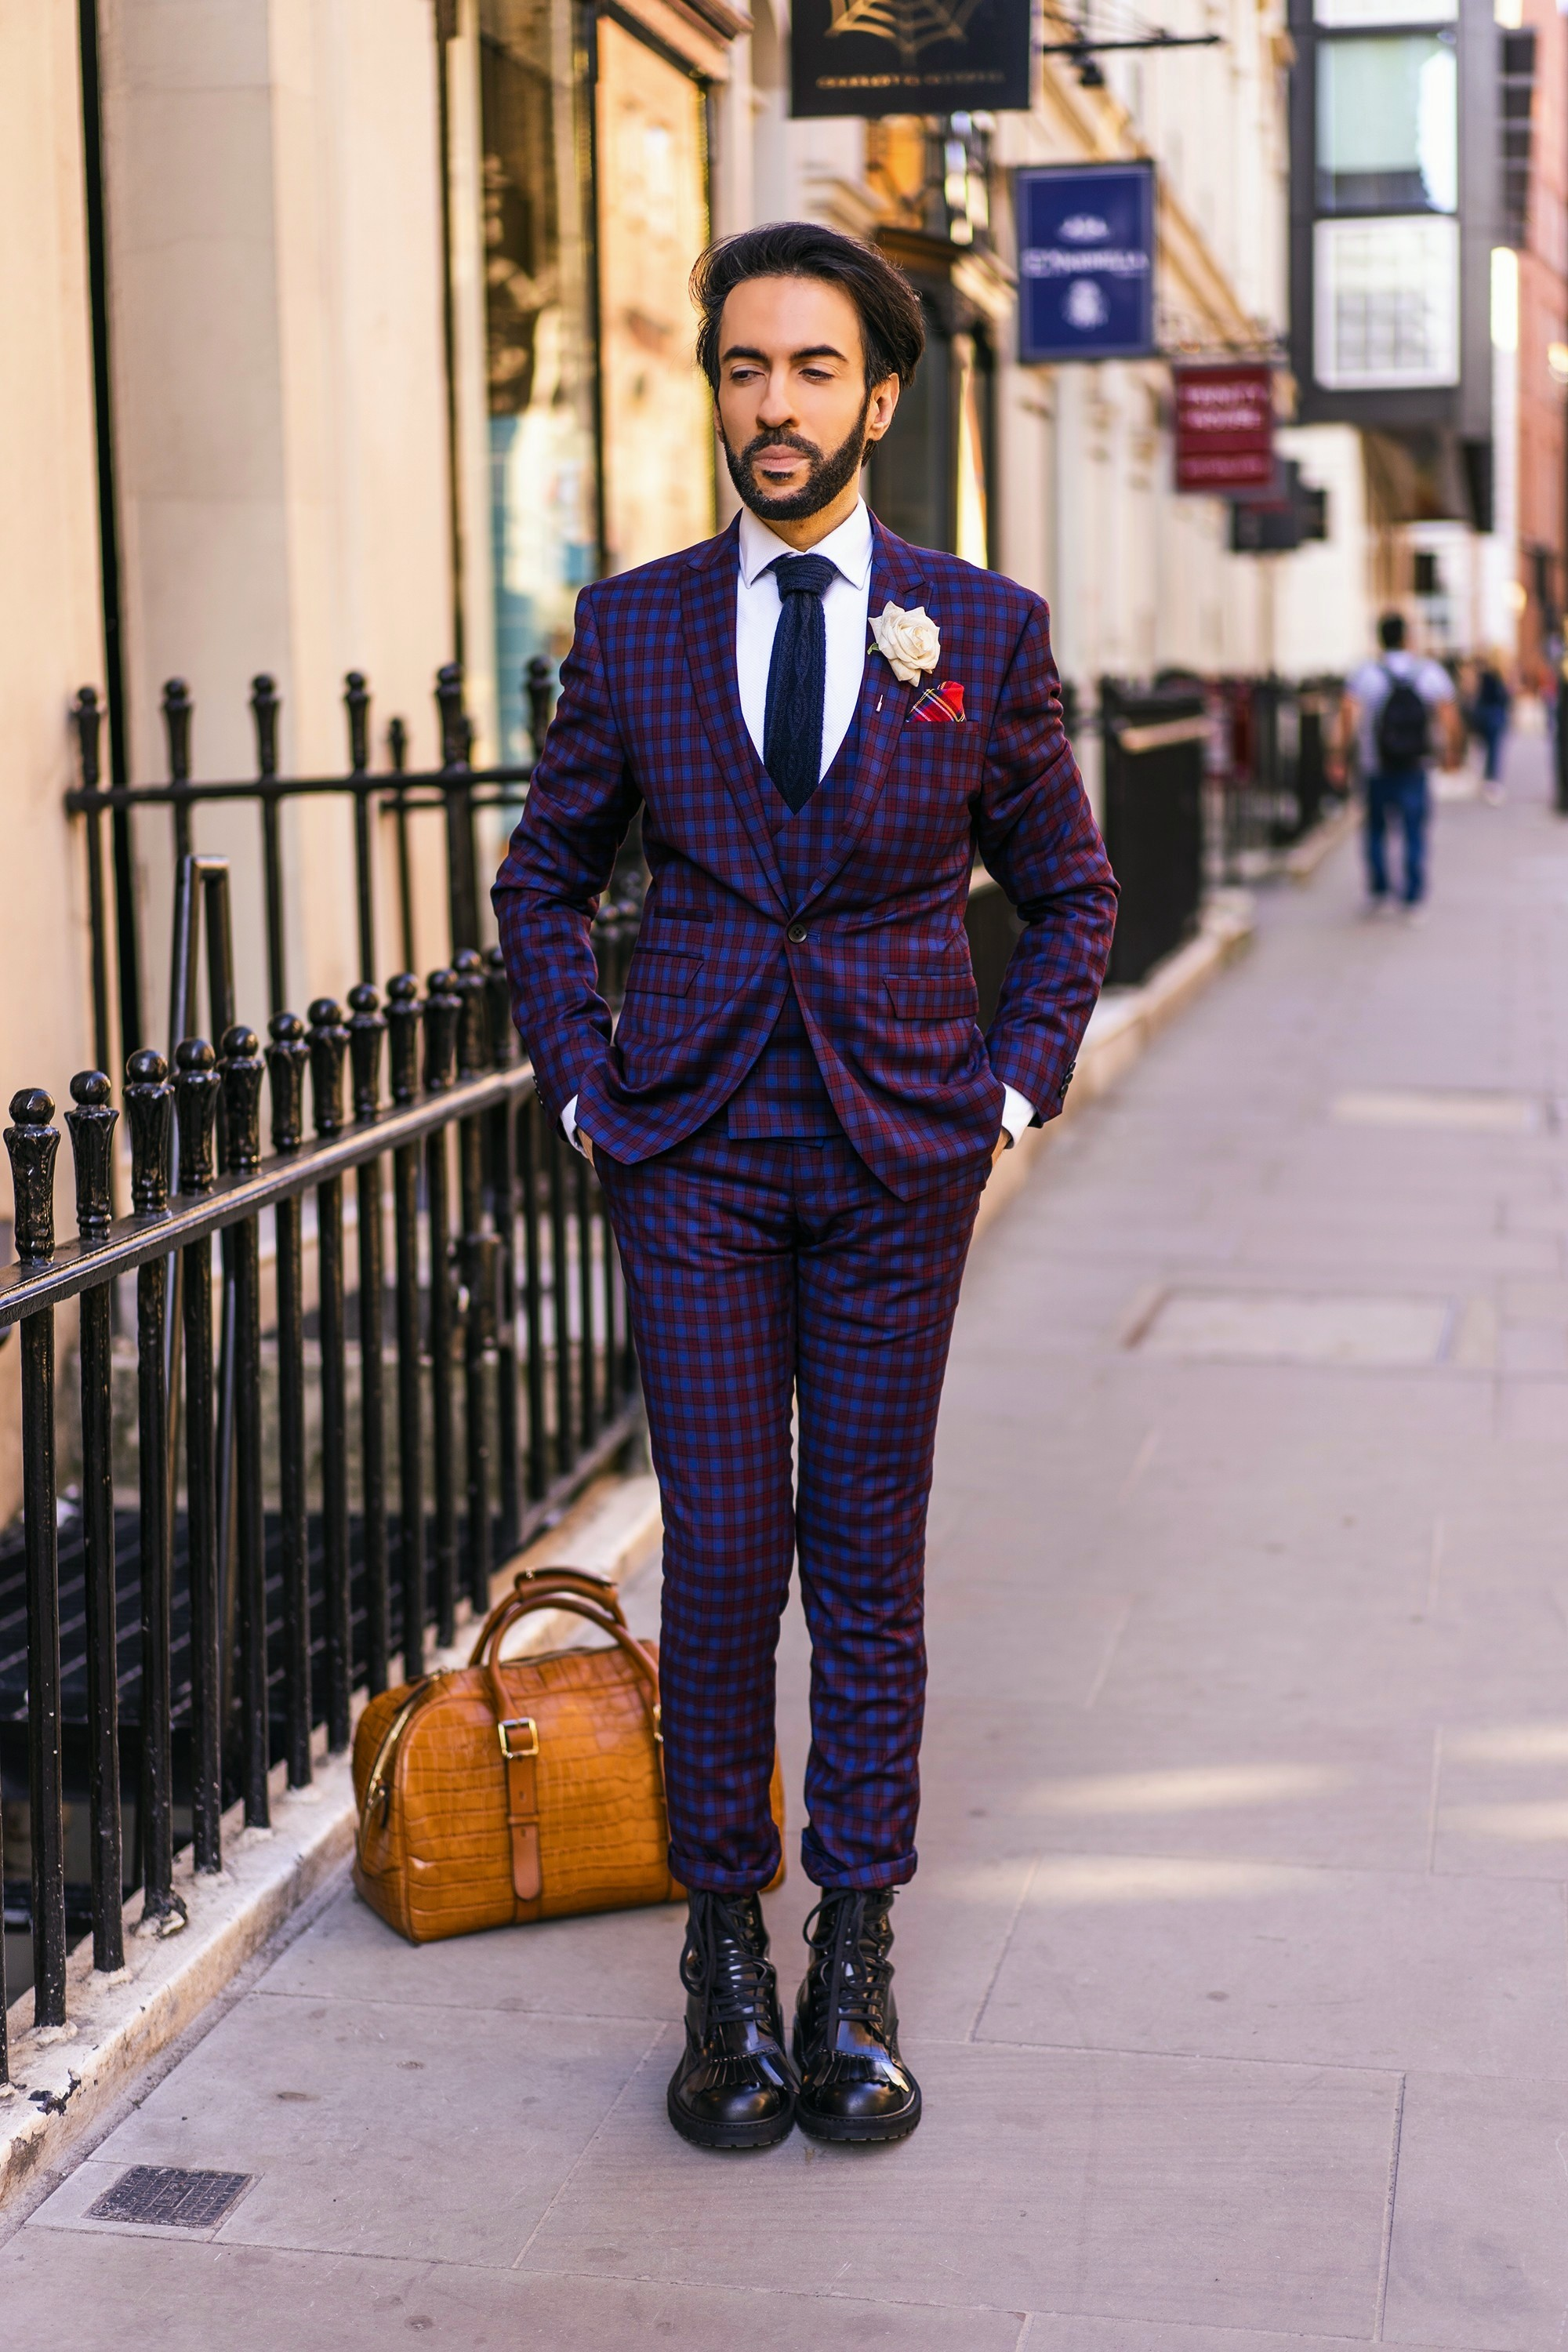 084bab0c83 Another wonderful side to wearing a suit is that it needn t be formal. You  can easily dress it down by wearing a t-shirt instead of shirt and  replacing your ...